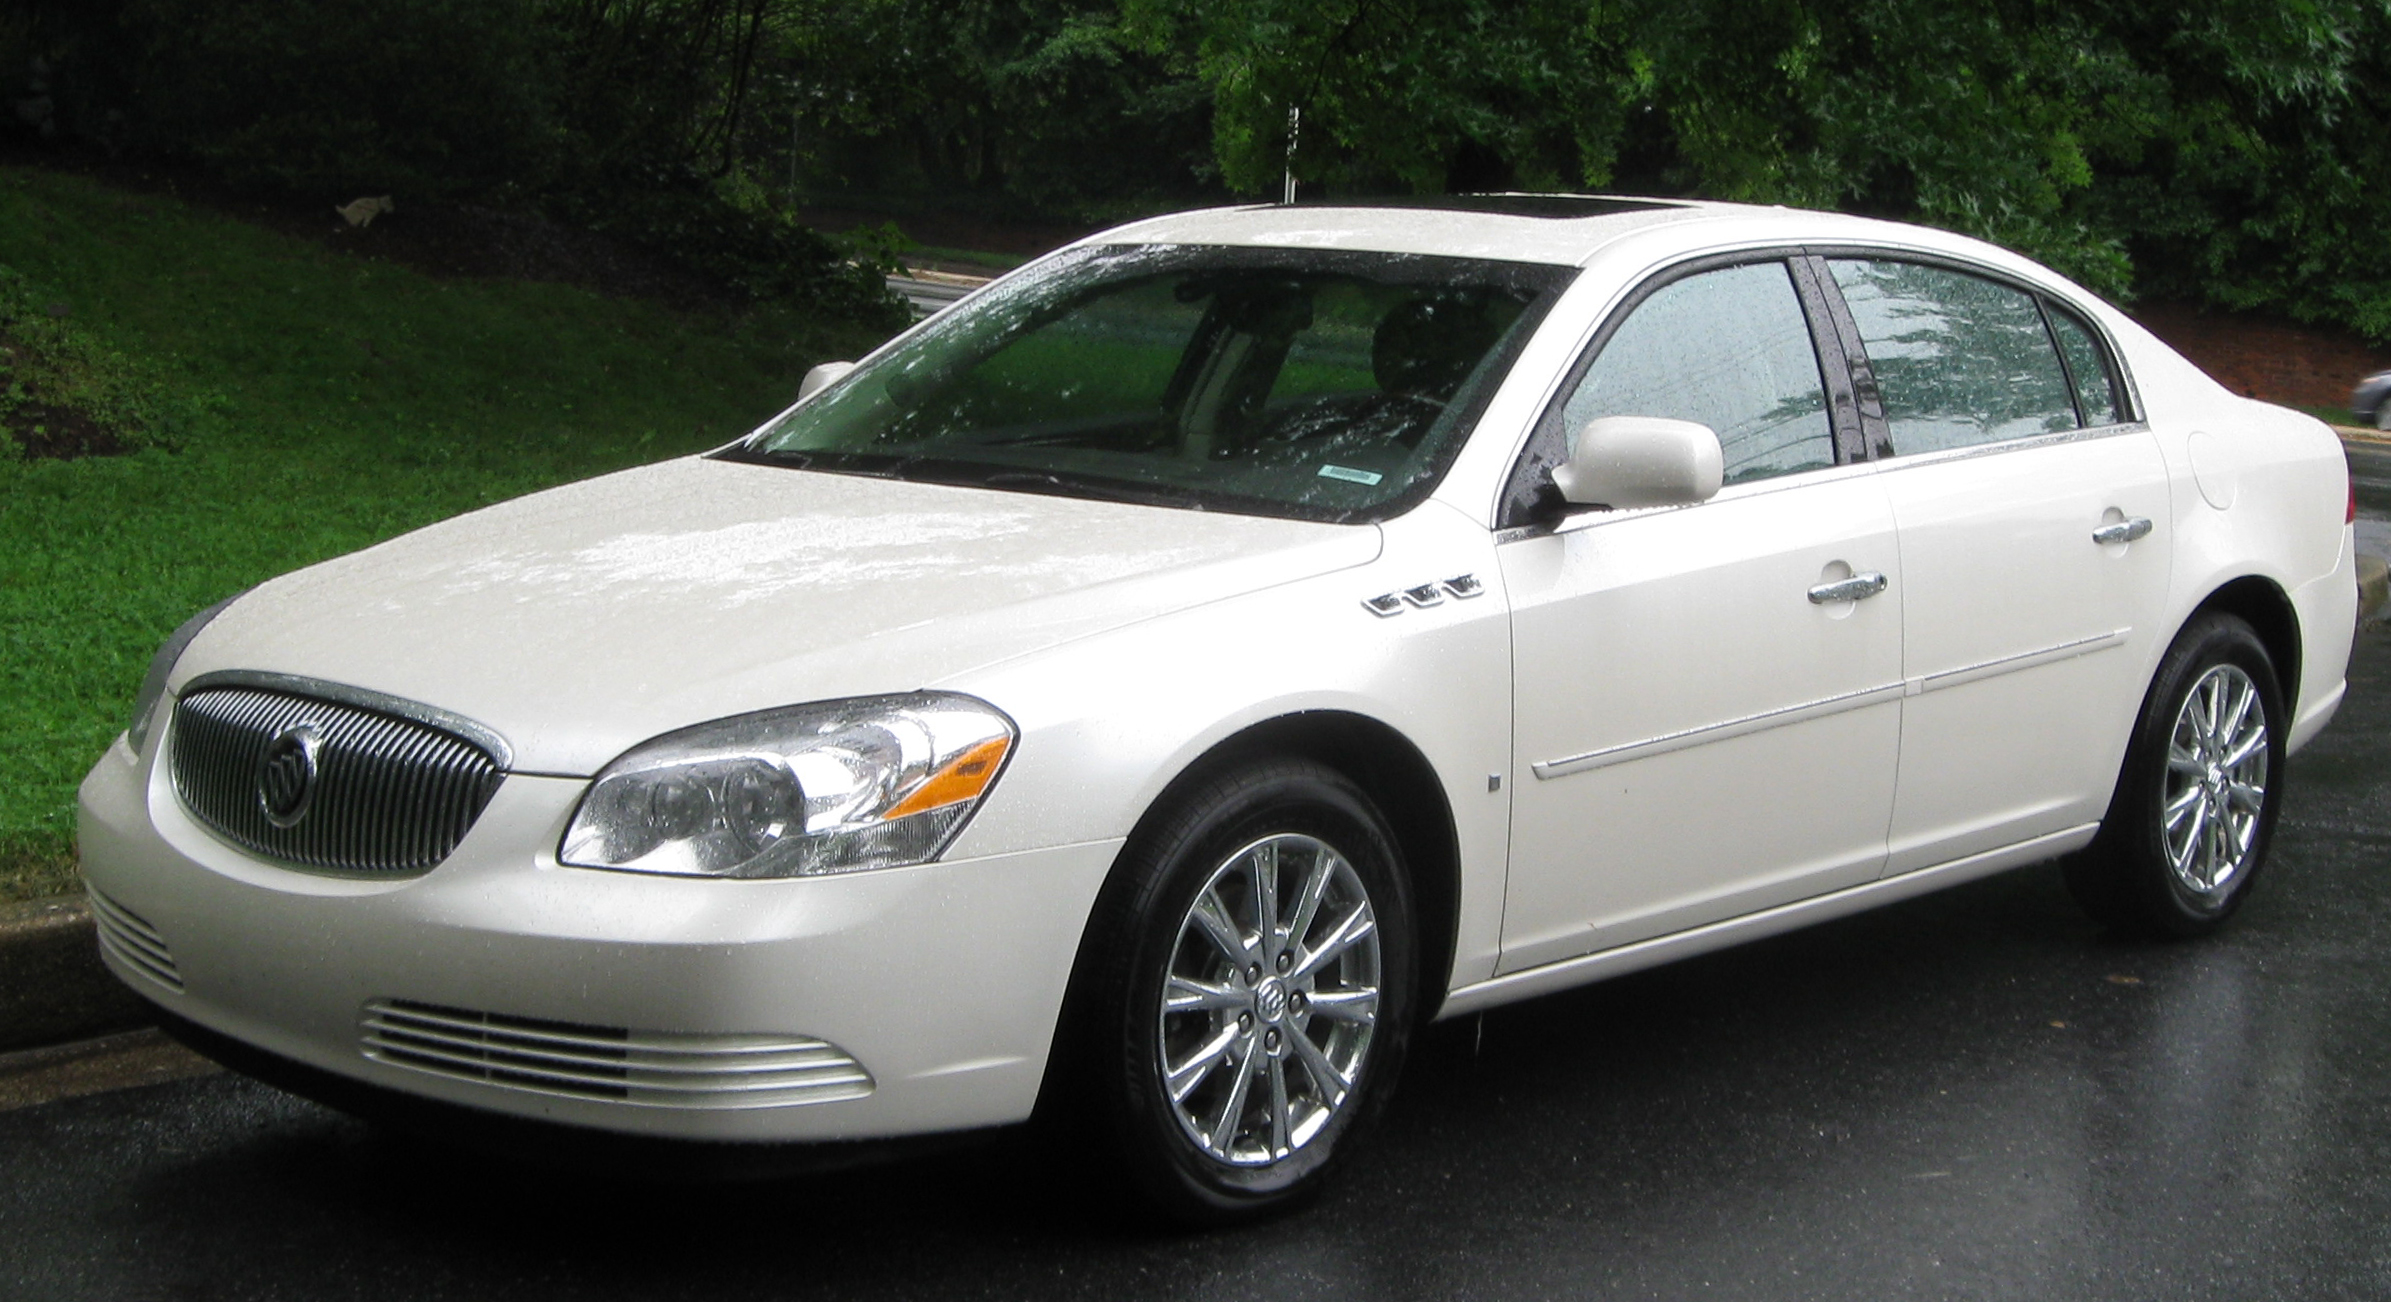 2009 Buick Lucerne - Information and photos - Zomb Drive